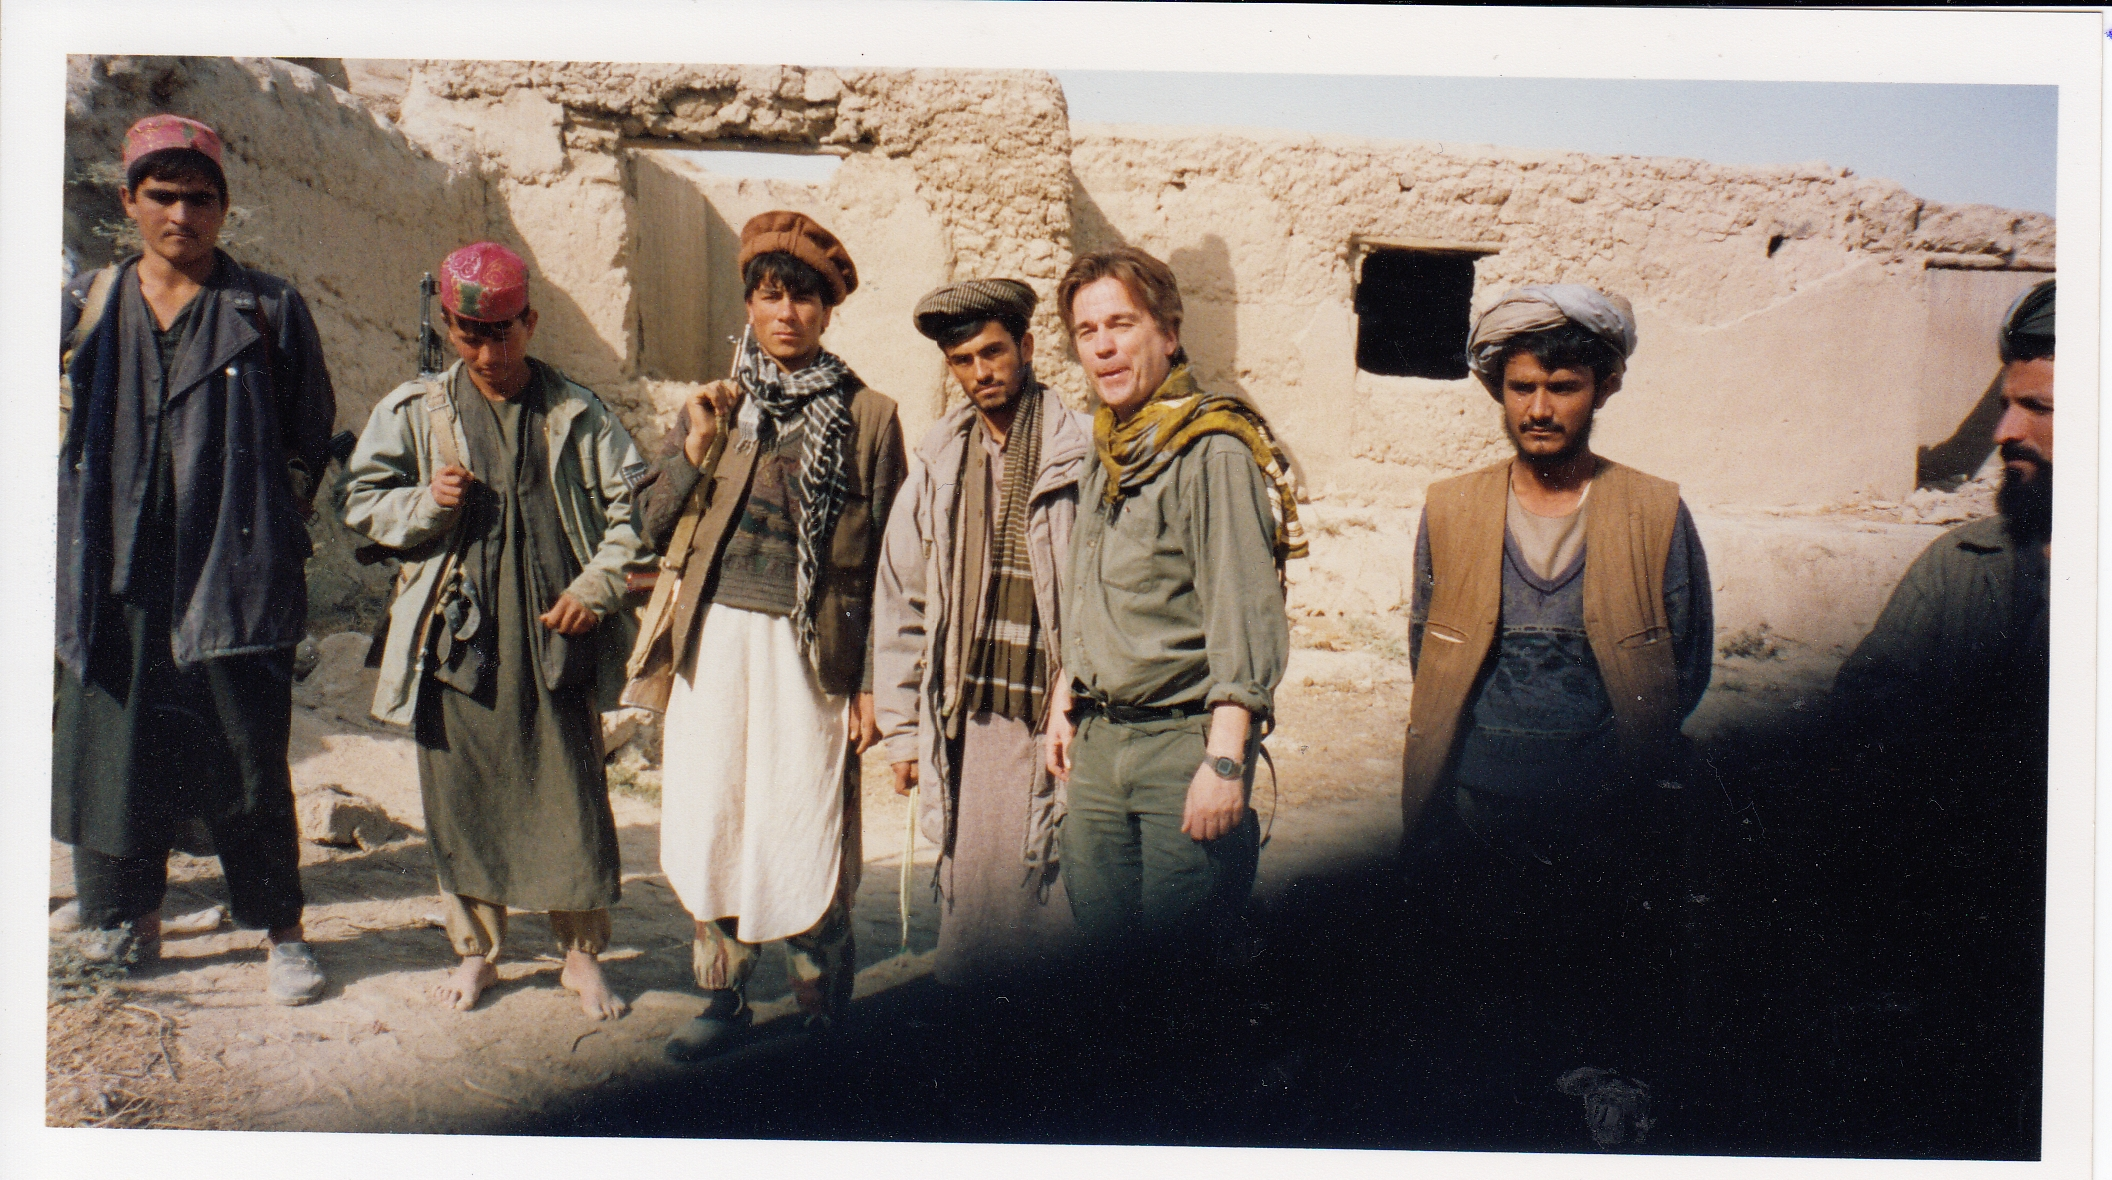 Ian with Mujahadin Guerillas in Afghanistan one month after 9.11